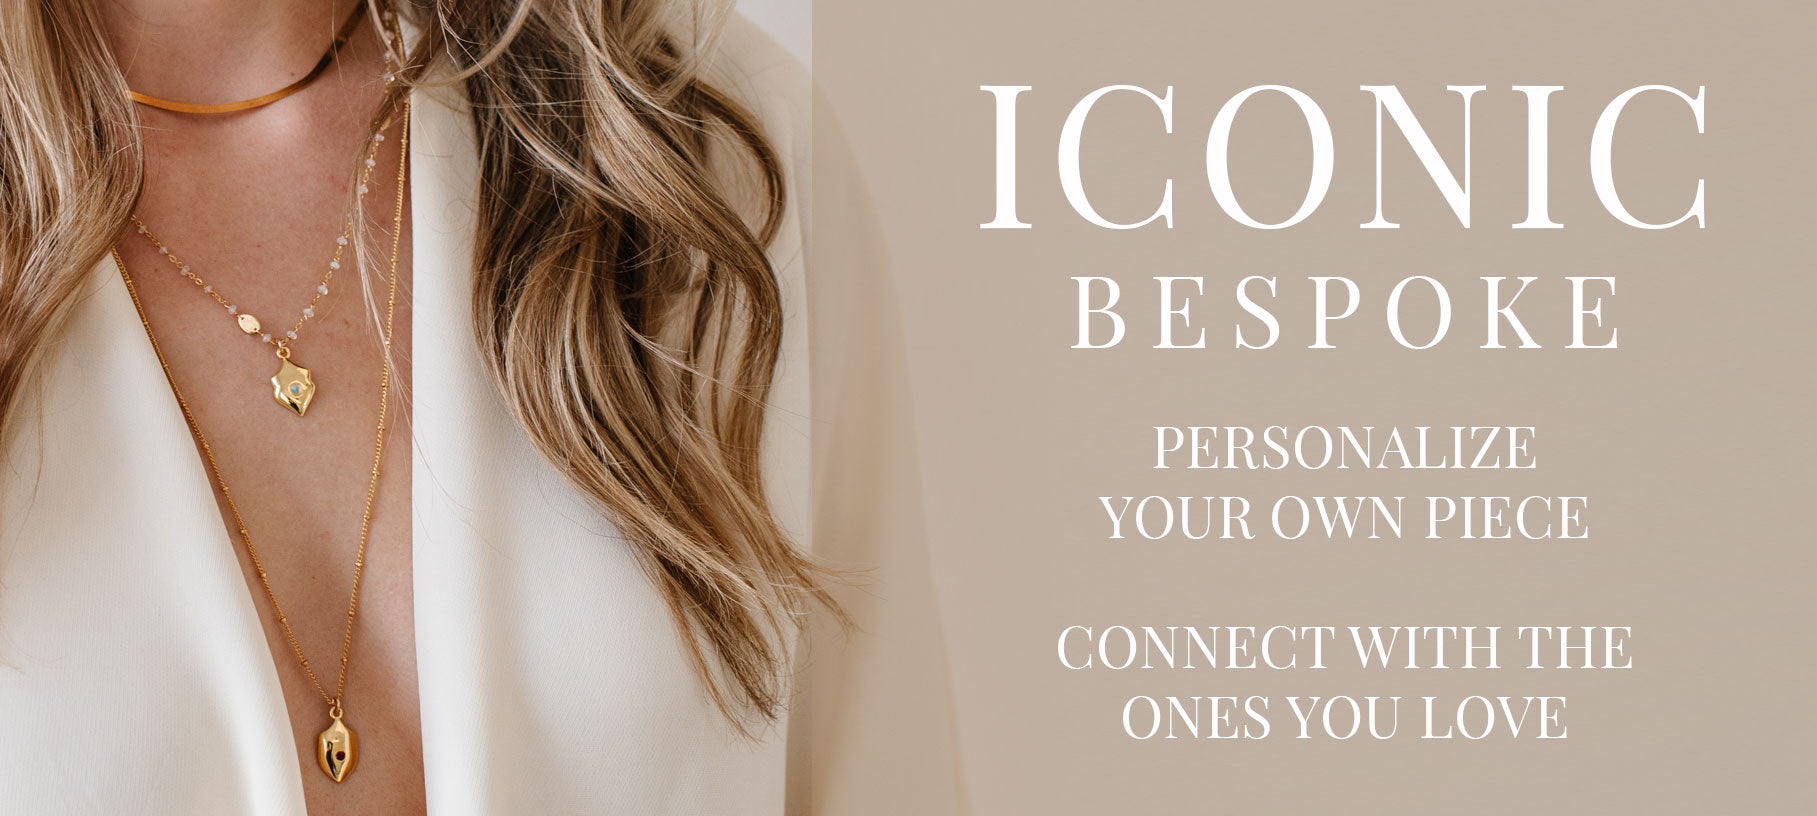 Iconic Bespoke Collection